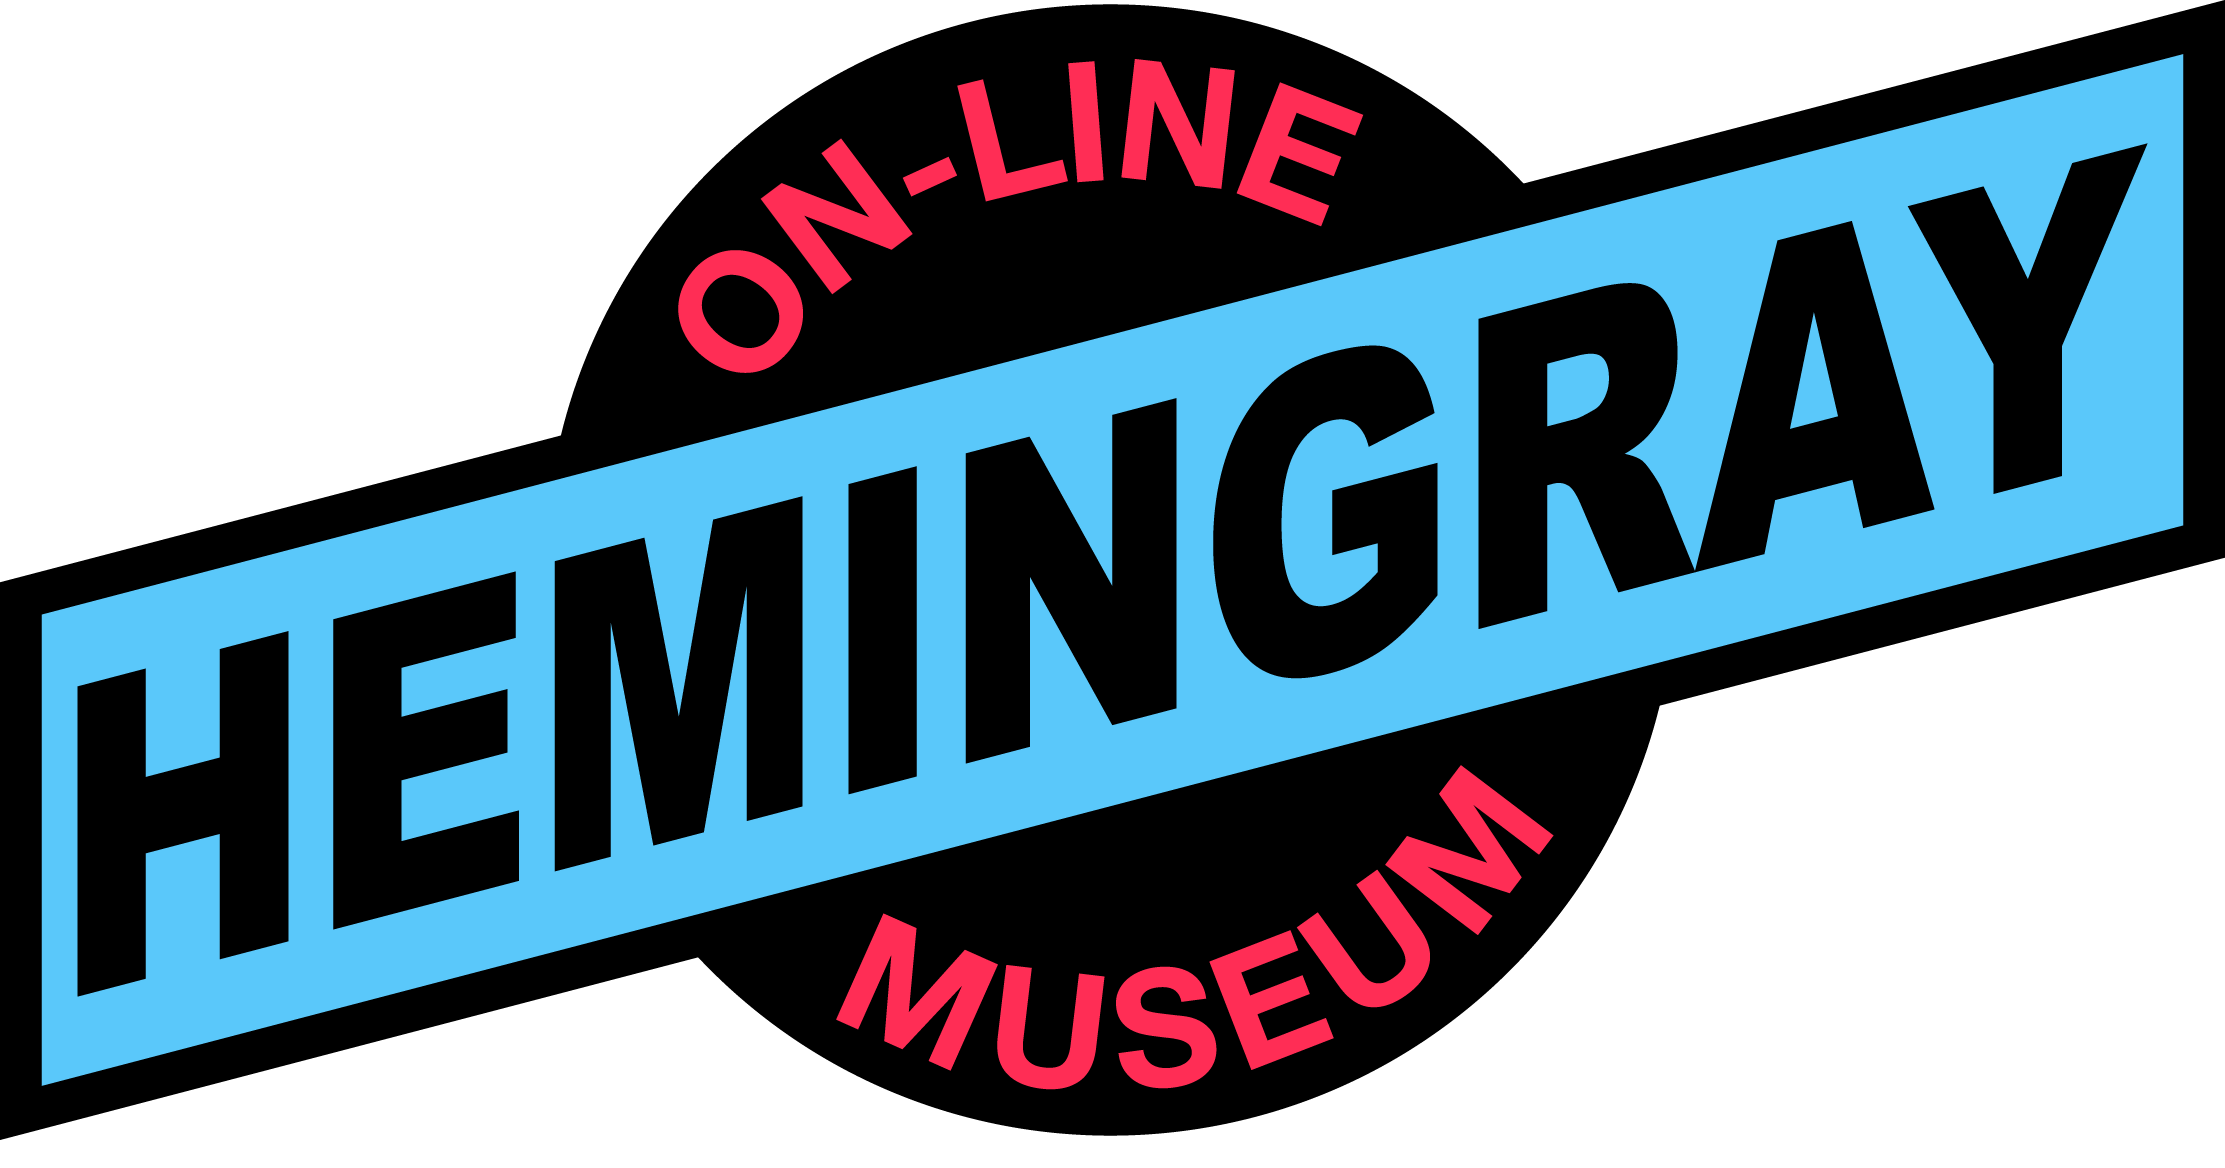 Hemingray On-Line Musueum logo